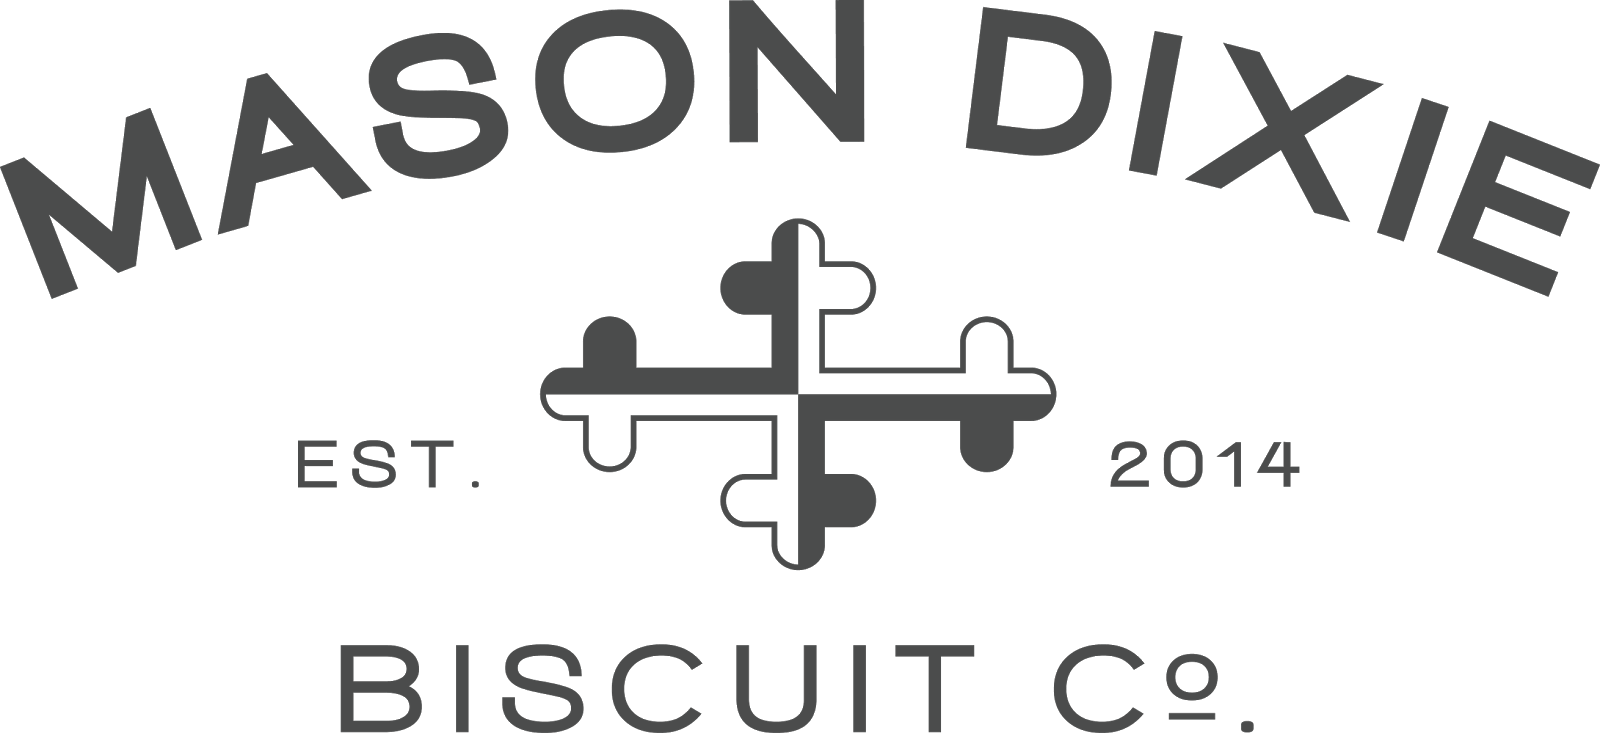 Mason Dixie Biscuit Co. Presents Biscuit Jam, August 6th - DC Outlook